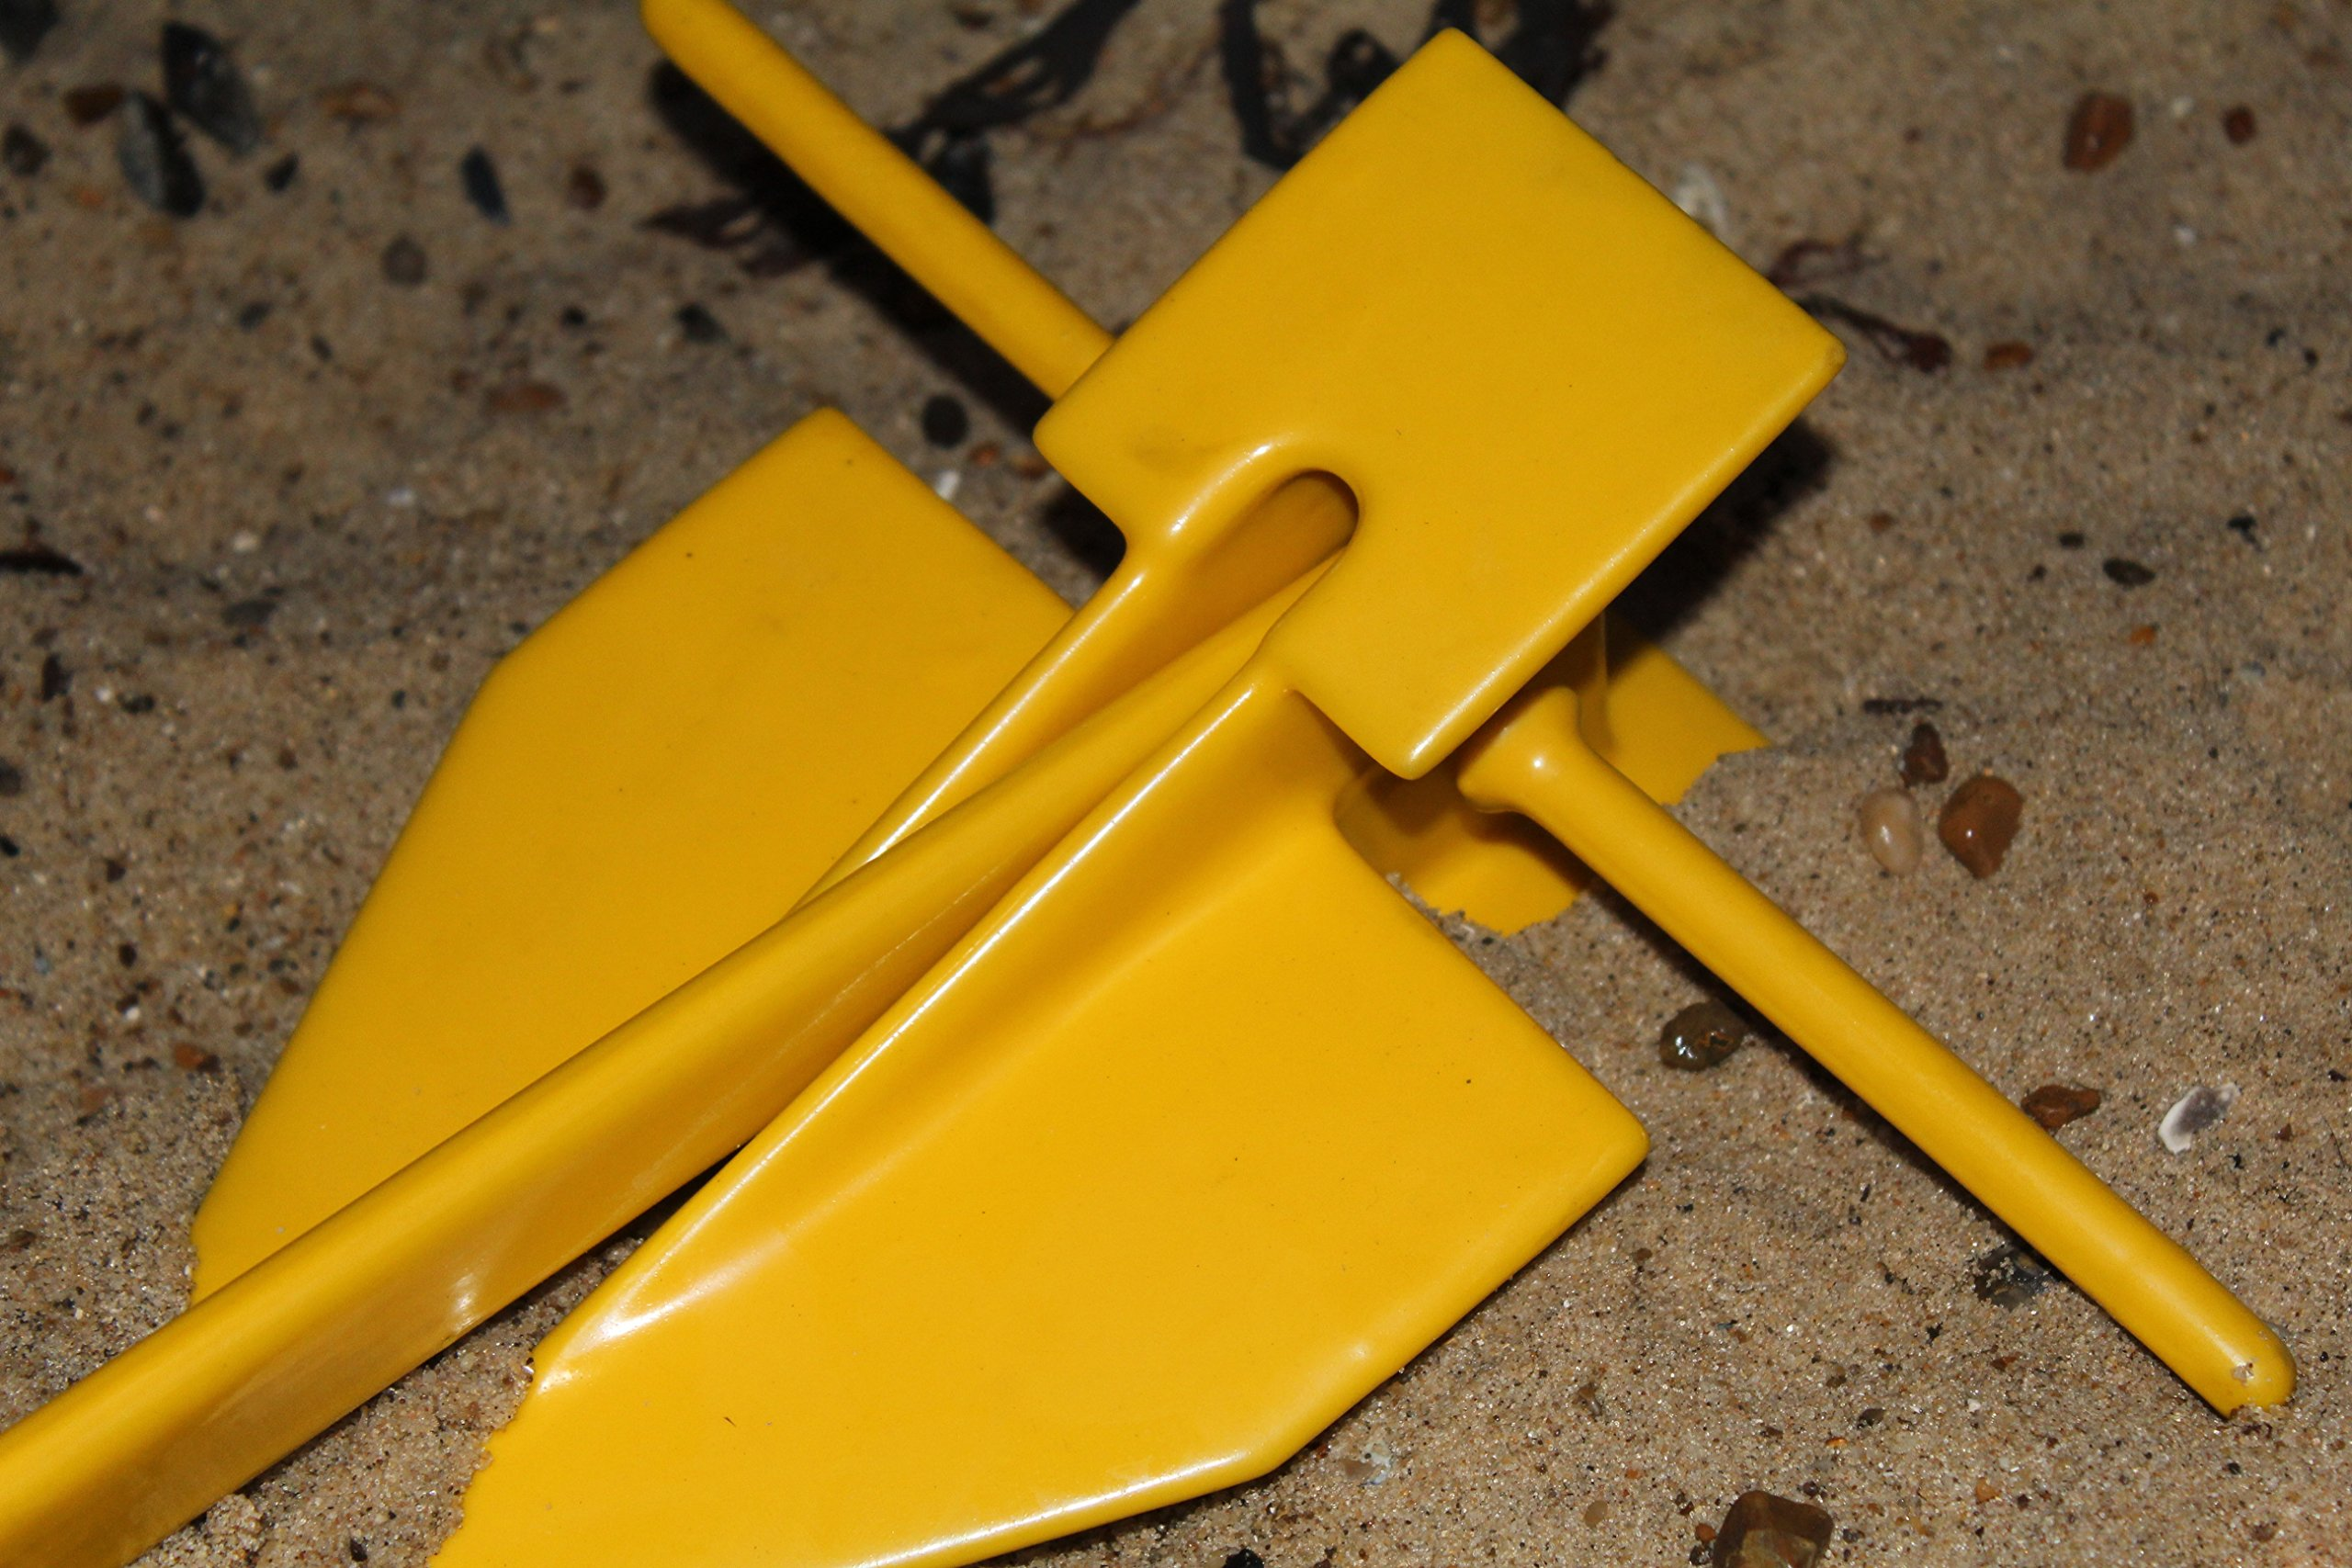 H2o Rubberised Yellow Danforth Anchor Kit 3